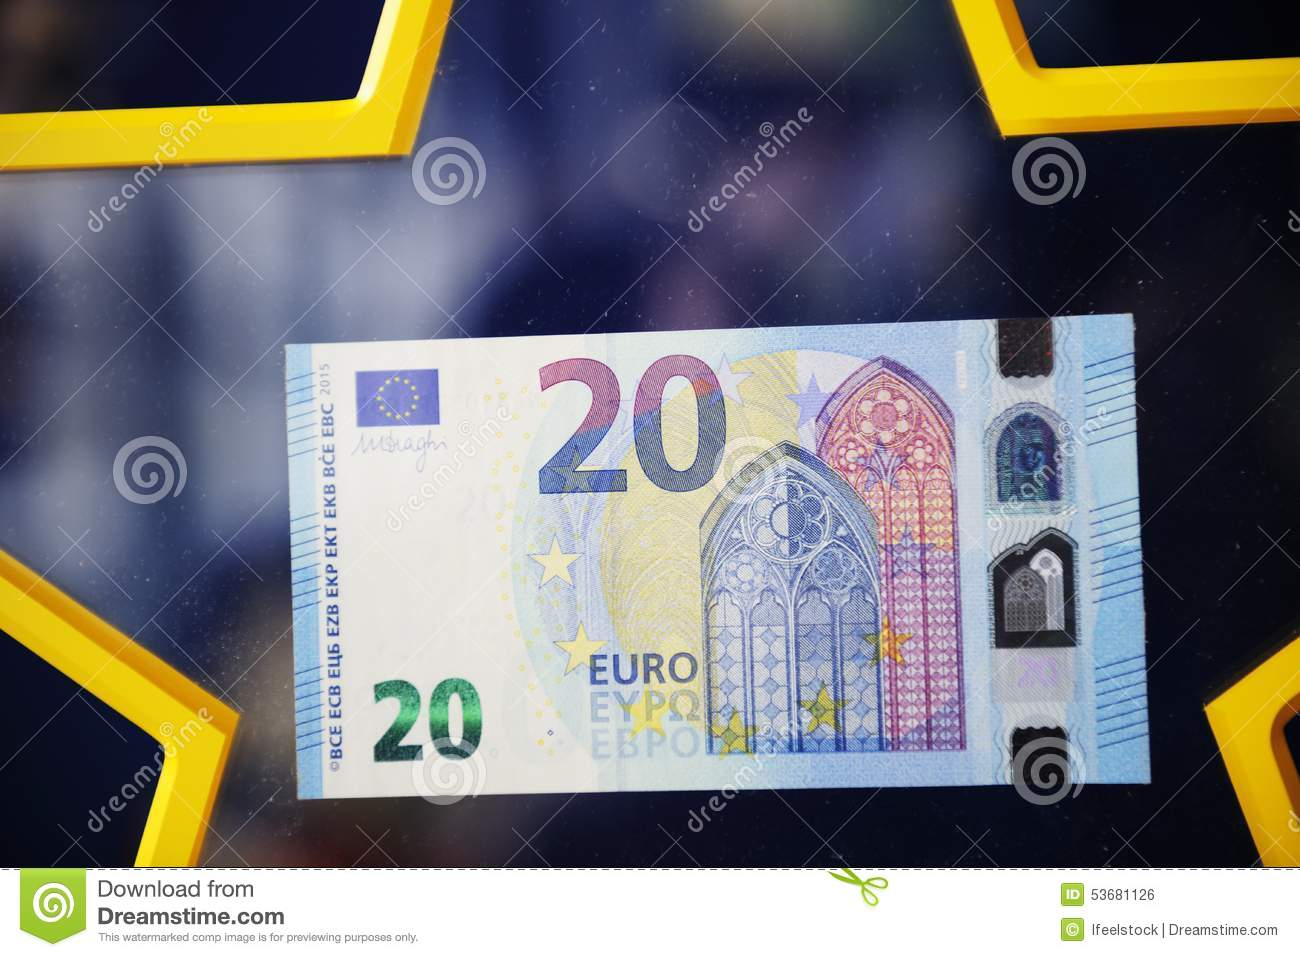 New 20 euro banknotes bill currency money paper european stock photo new 20 euro banknotes bill currency money paper european biocorpaavc Images